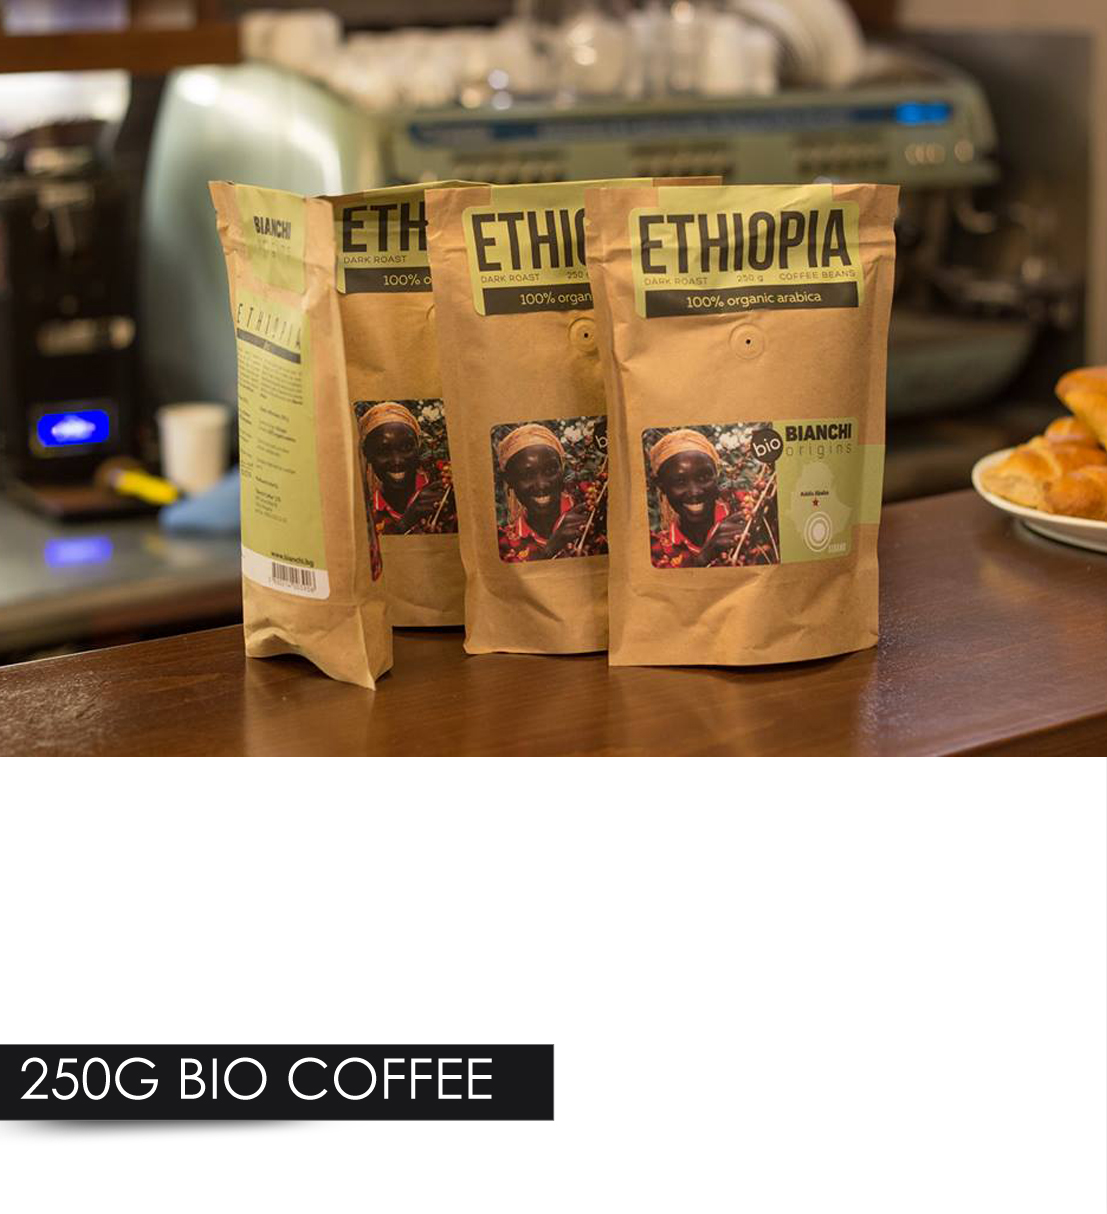 Coffee Arabica In Ethiopia 250g Bio Coffee 100 Organic Arabica Coffee Beans Bianchi